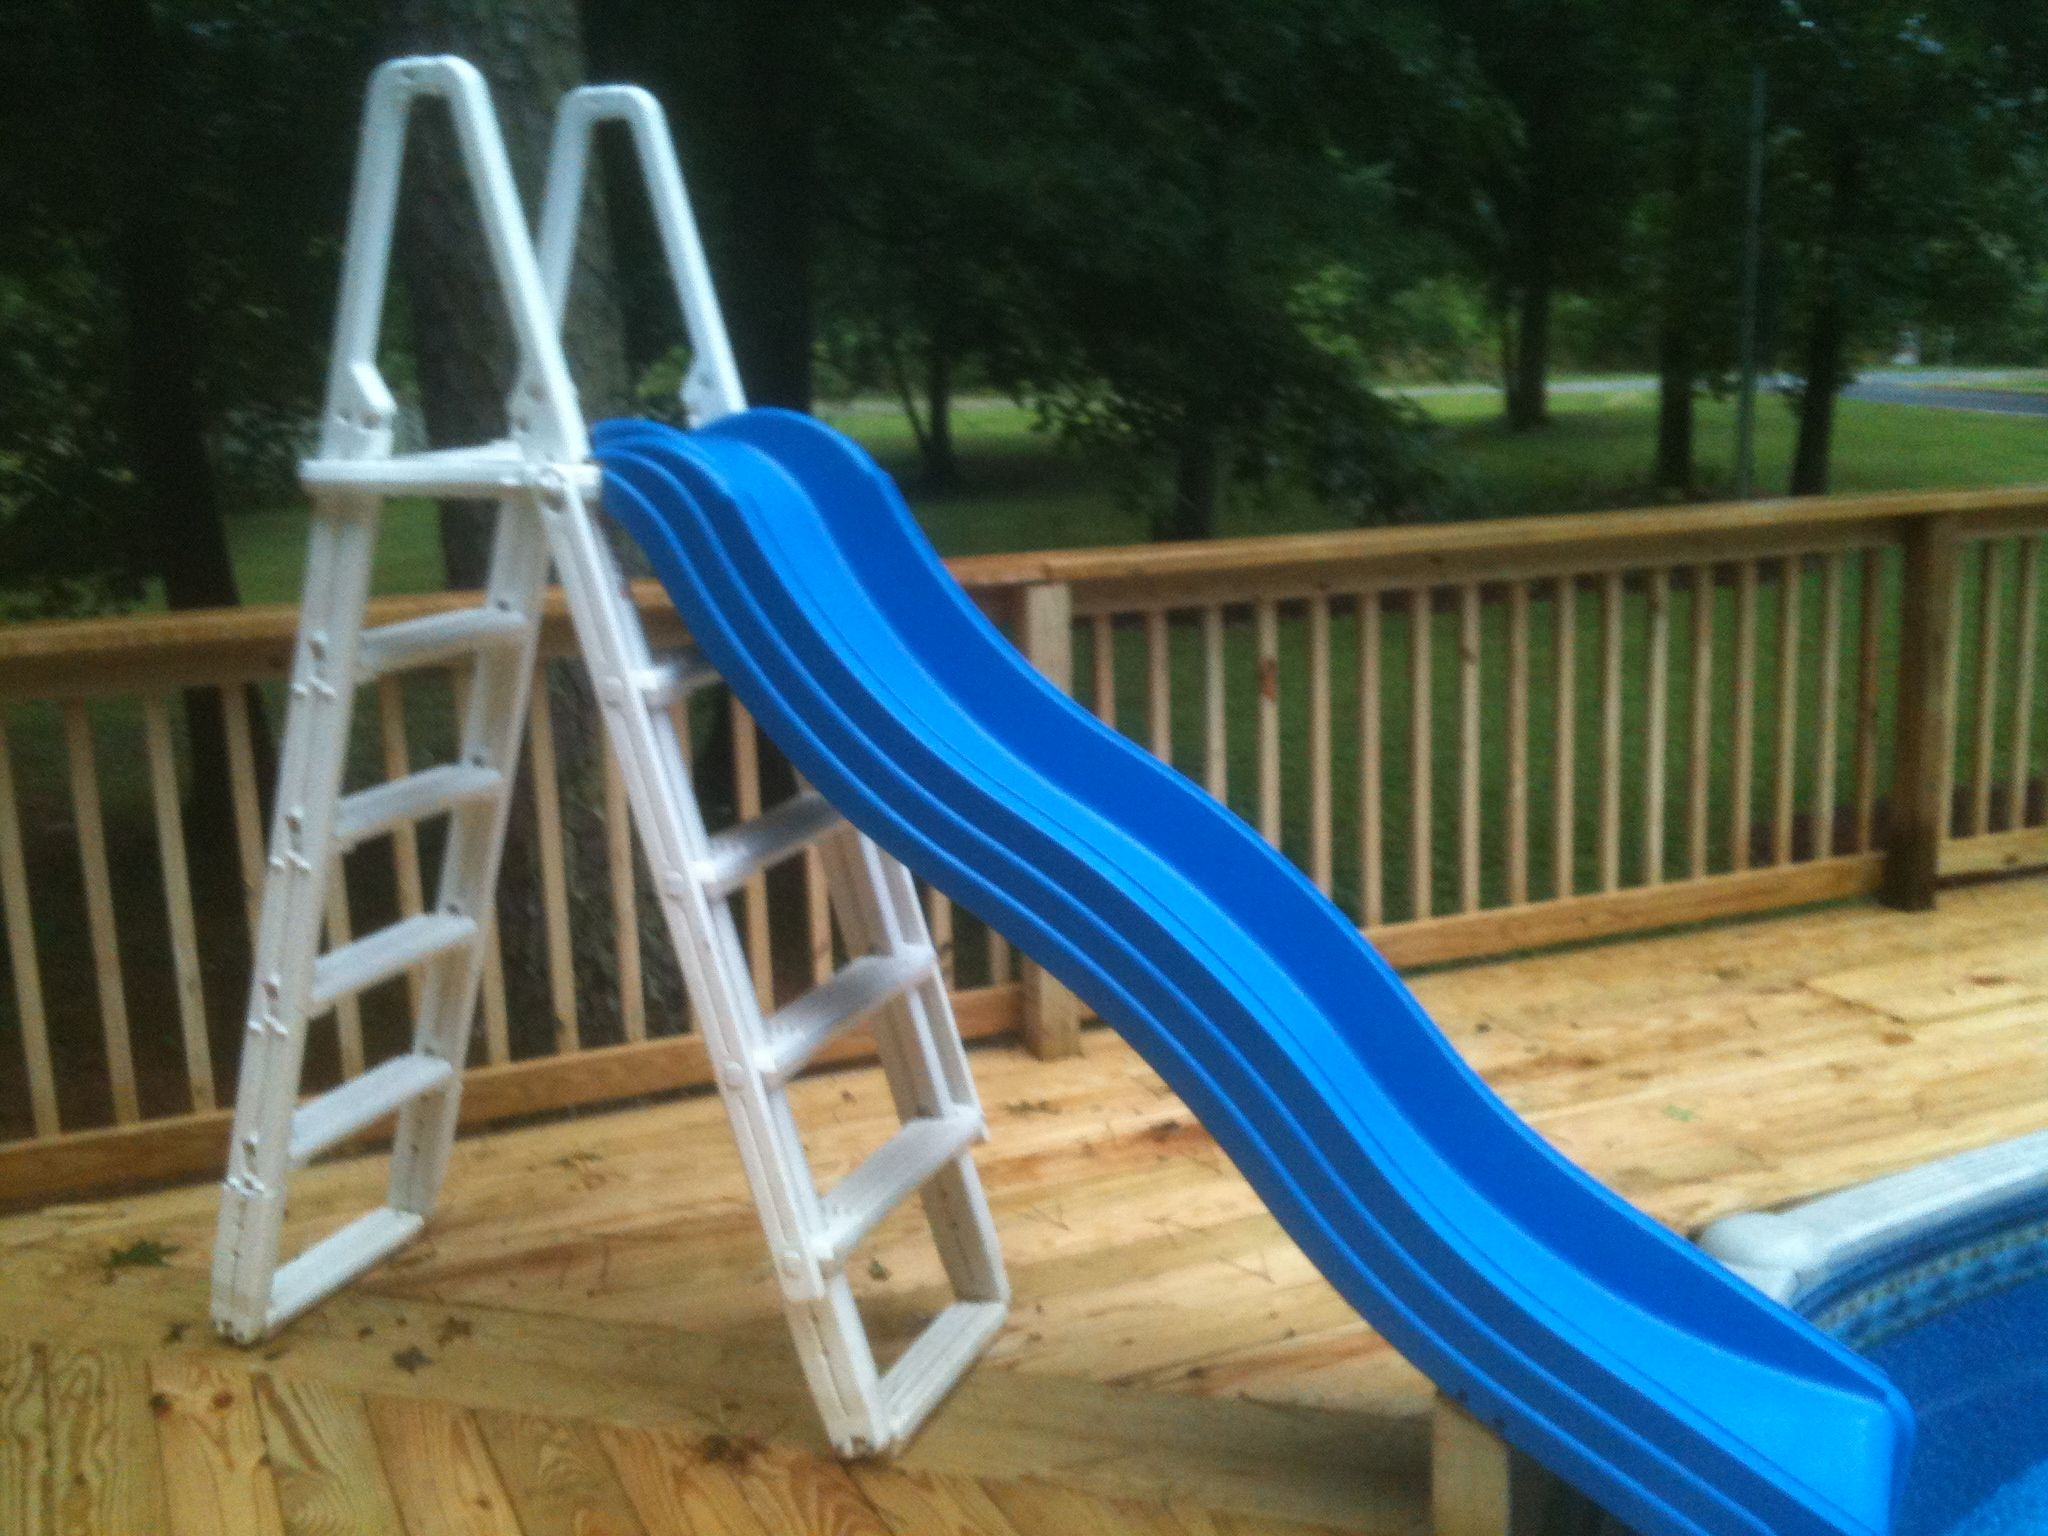 diy above ground pool slide swimming pool my wife found the slide at yard sale it is playground slide attached to our old pool ladder did this over weekend sale